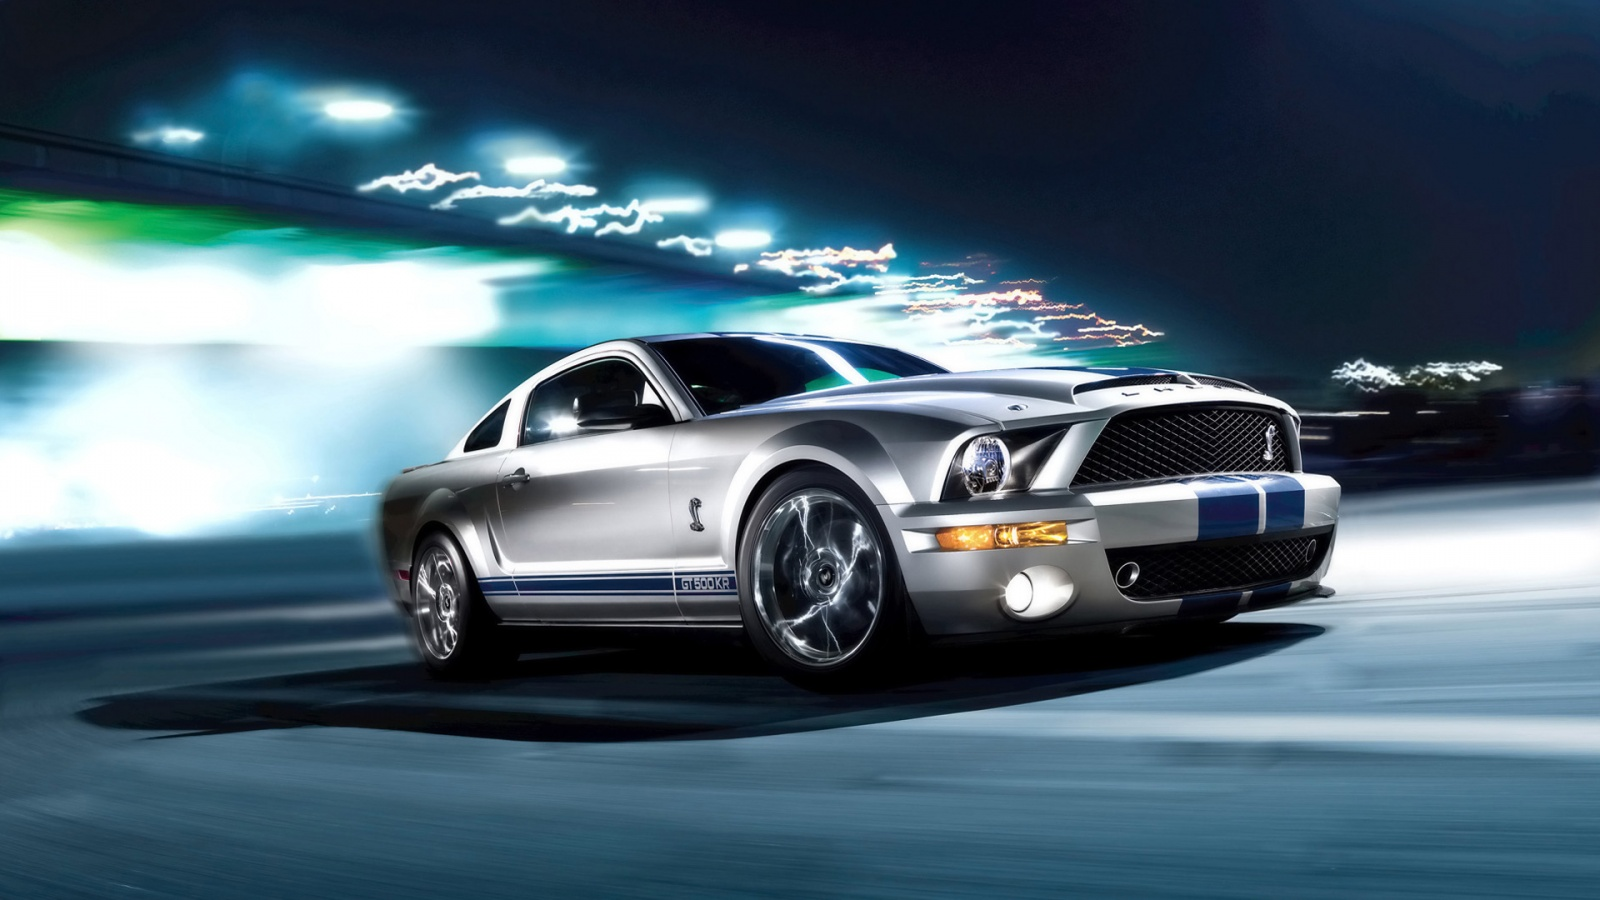 Ford Mustang Shelby Wallpapers HD Wallpapers 1600x900